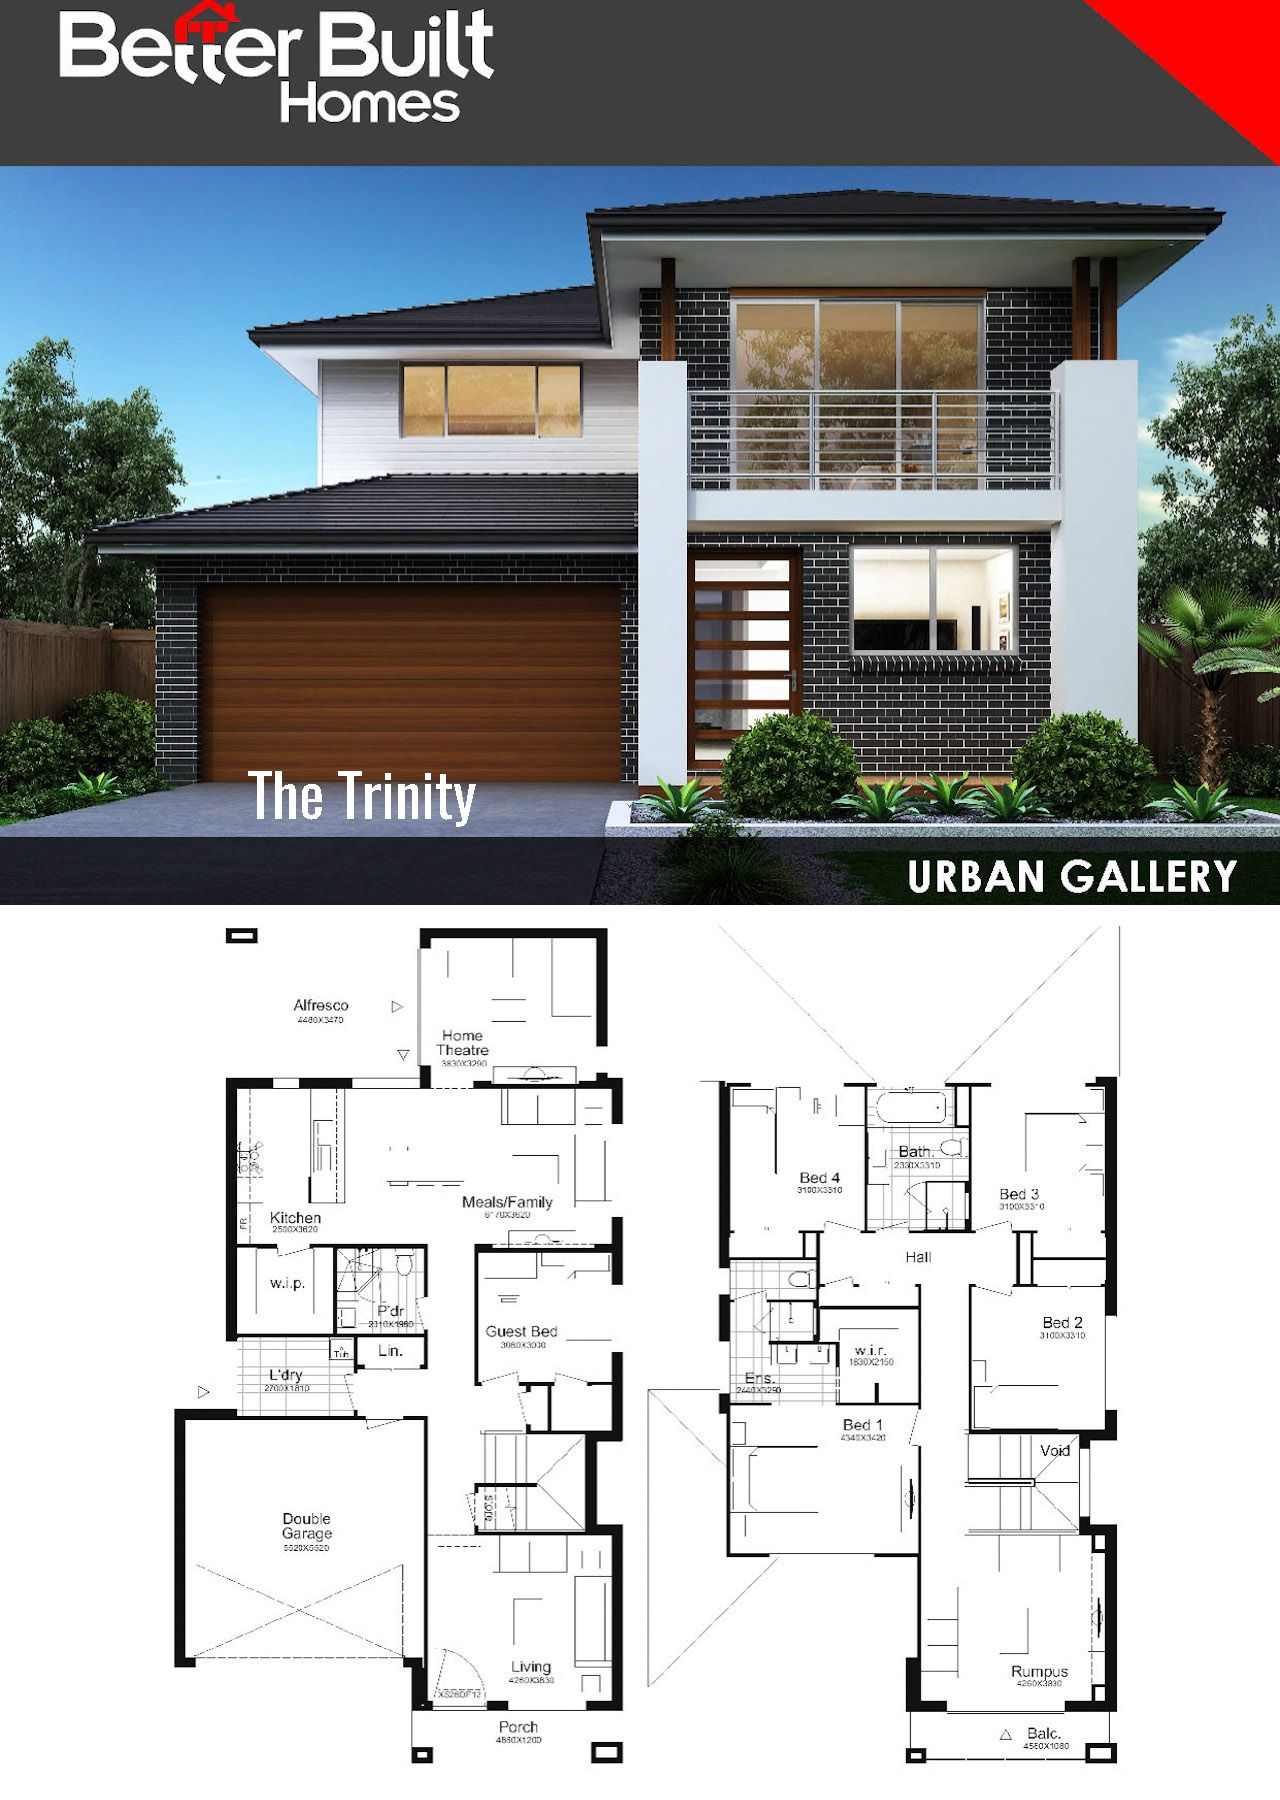 the waterbrook double storey house design 265 sq m 12 09m x the trinity double storey house design 291 61 sq m 10 35m x 19 34m